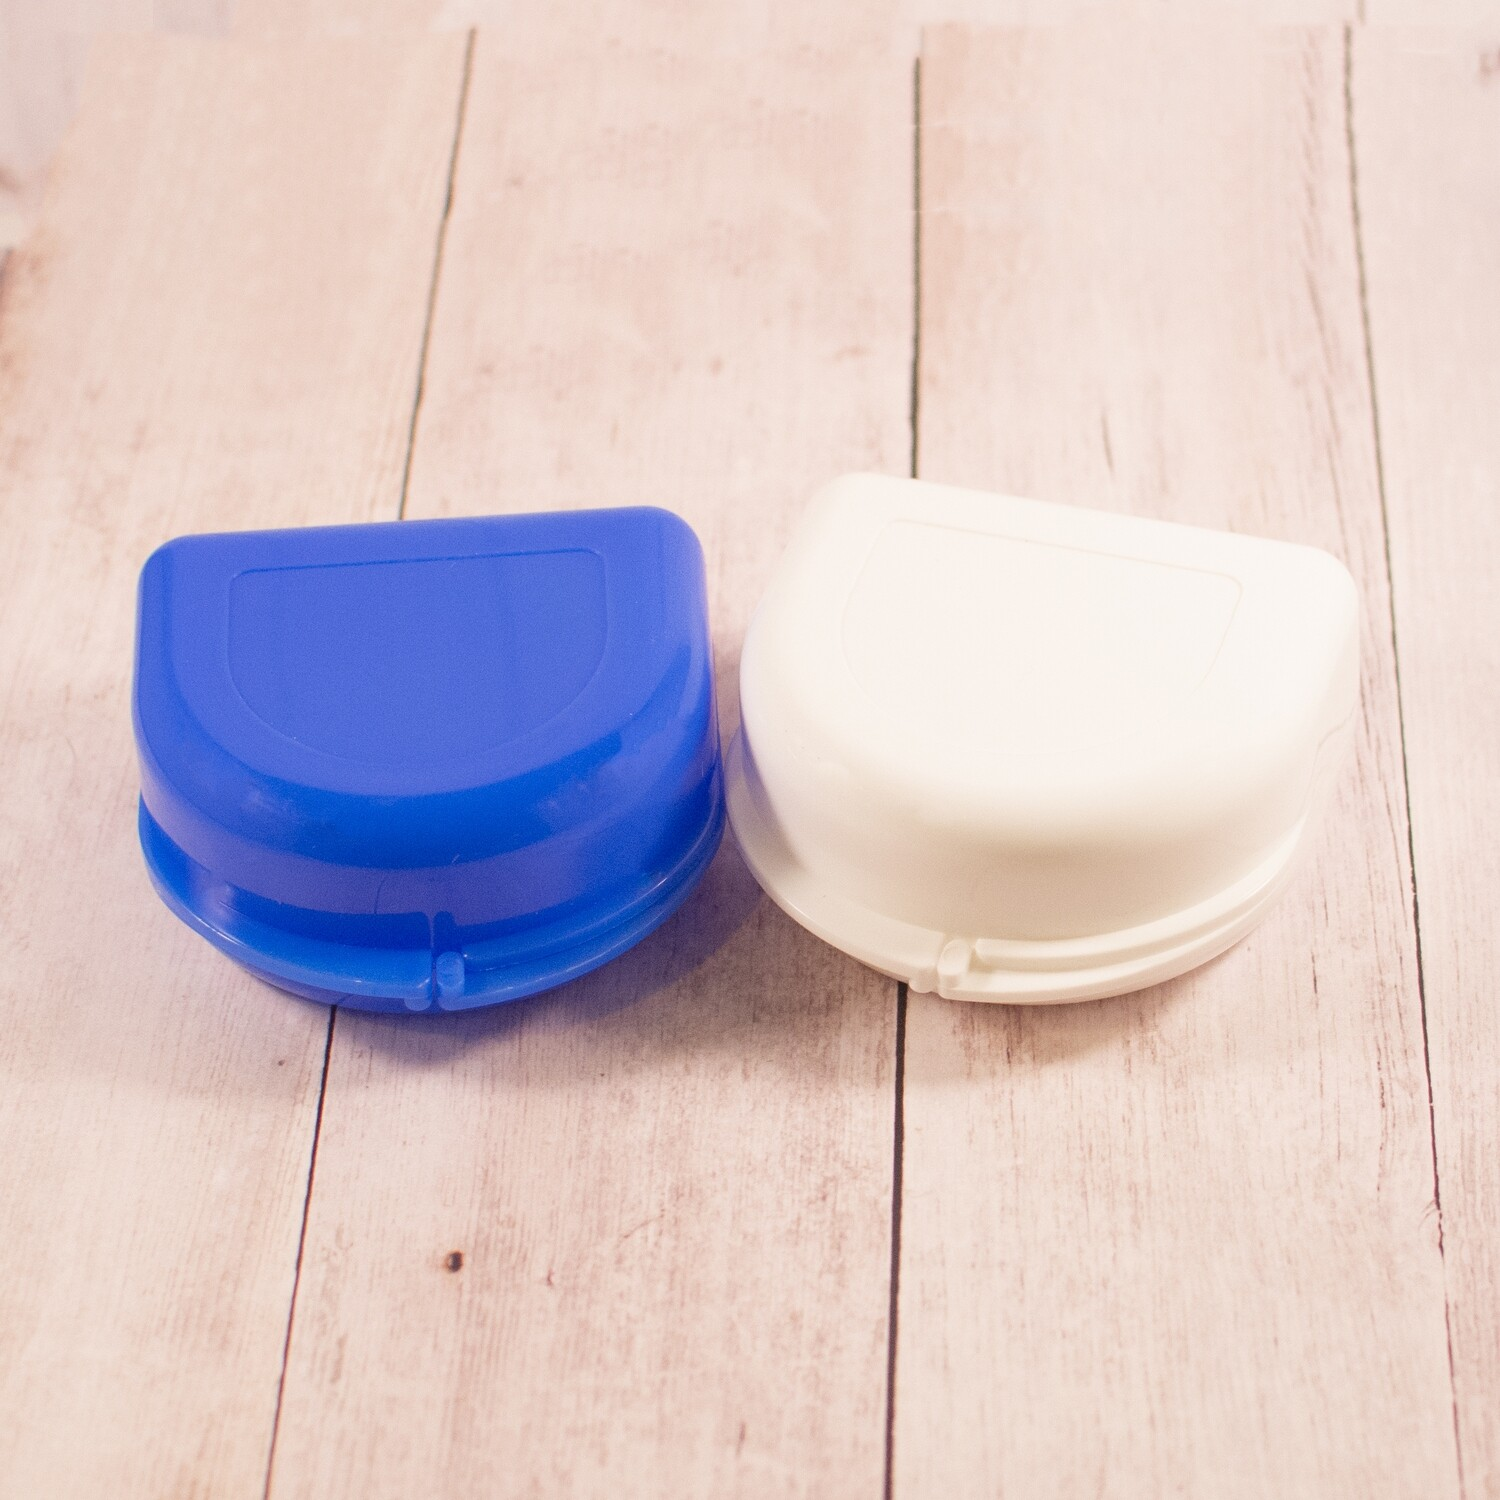 Larger Ventilated Mouth Tray Case